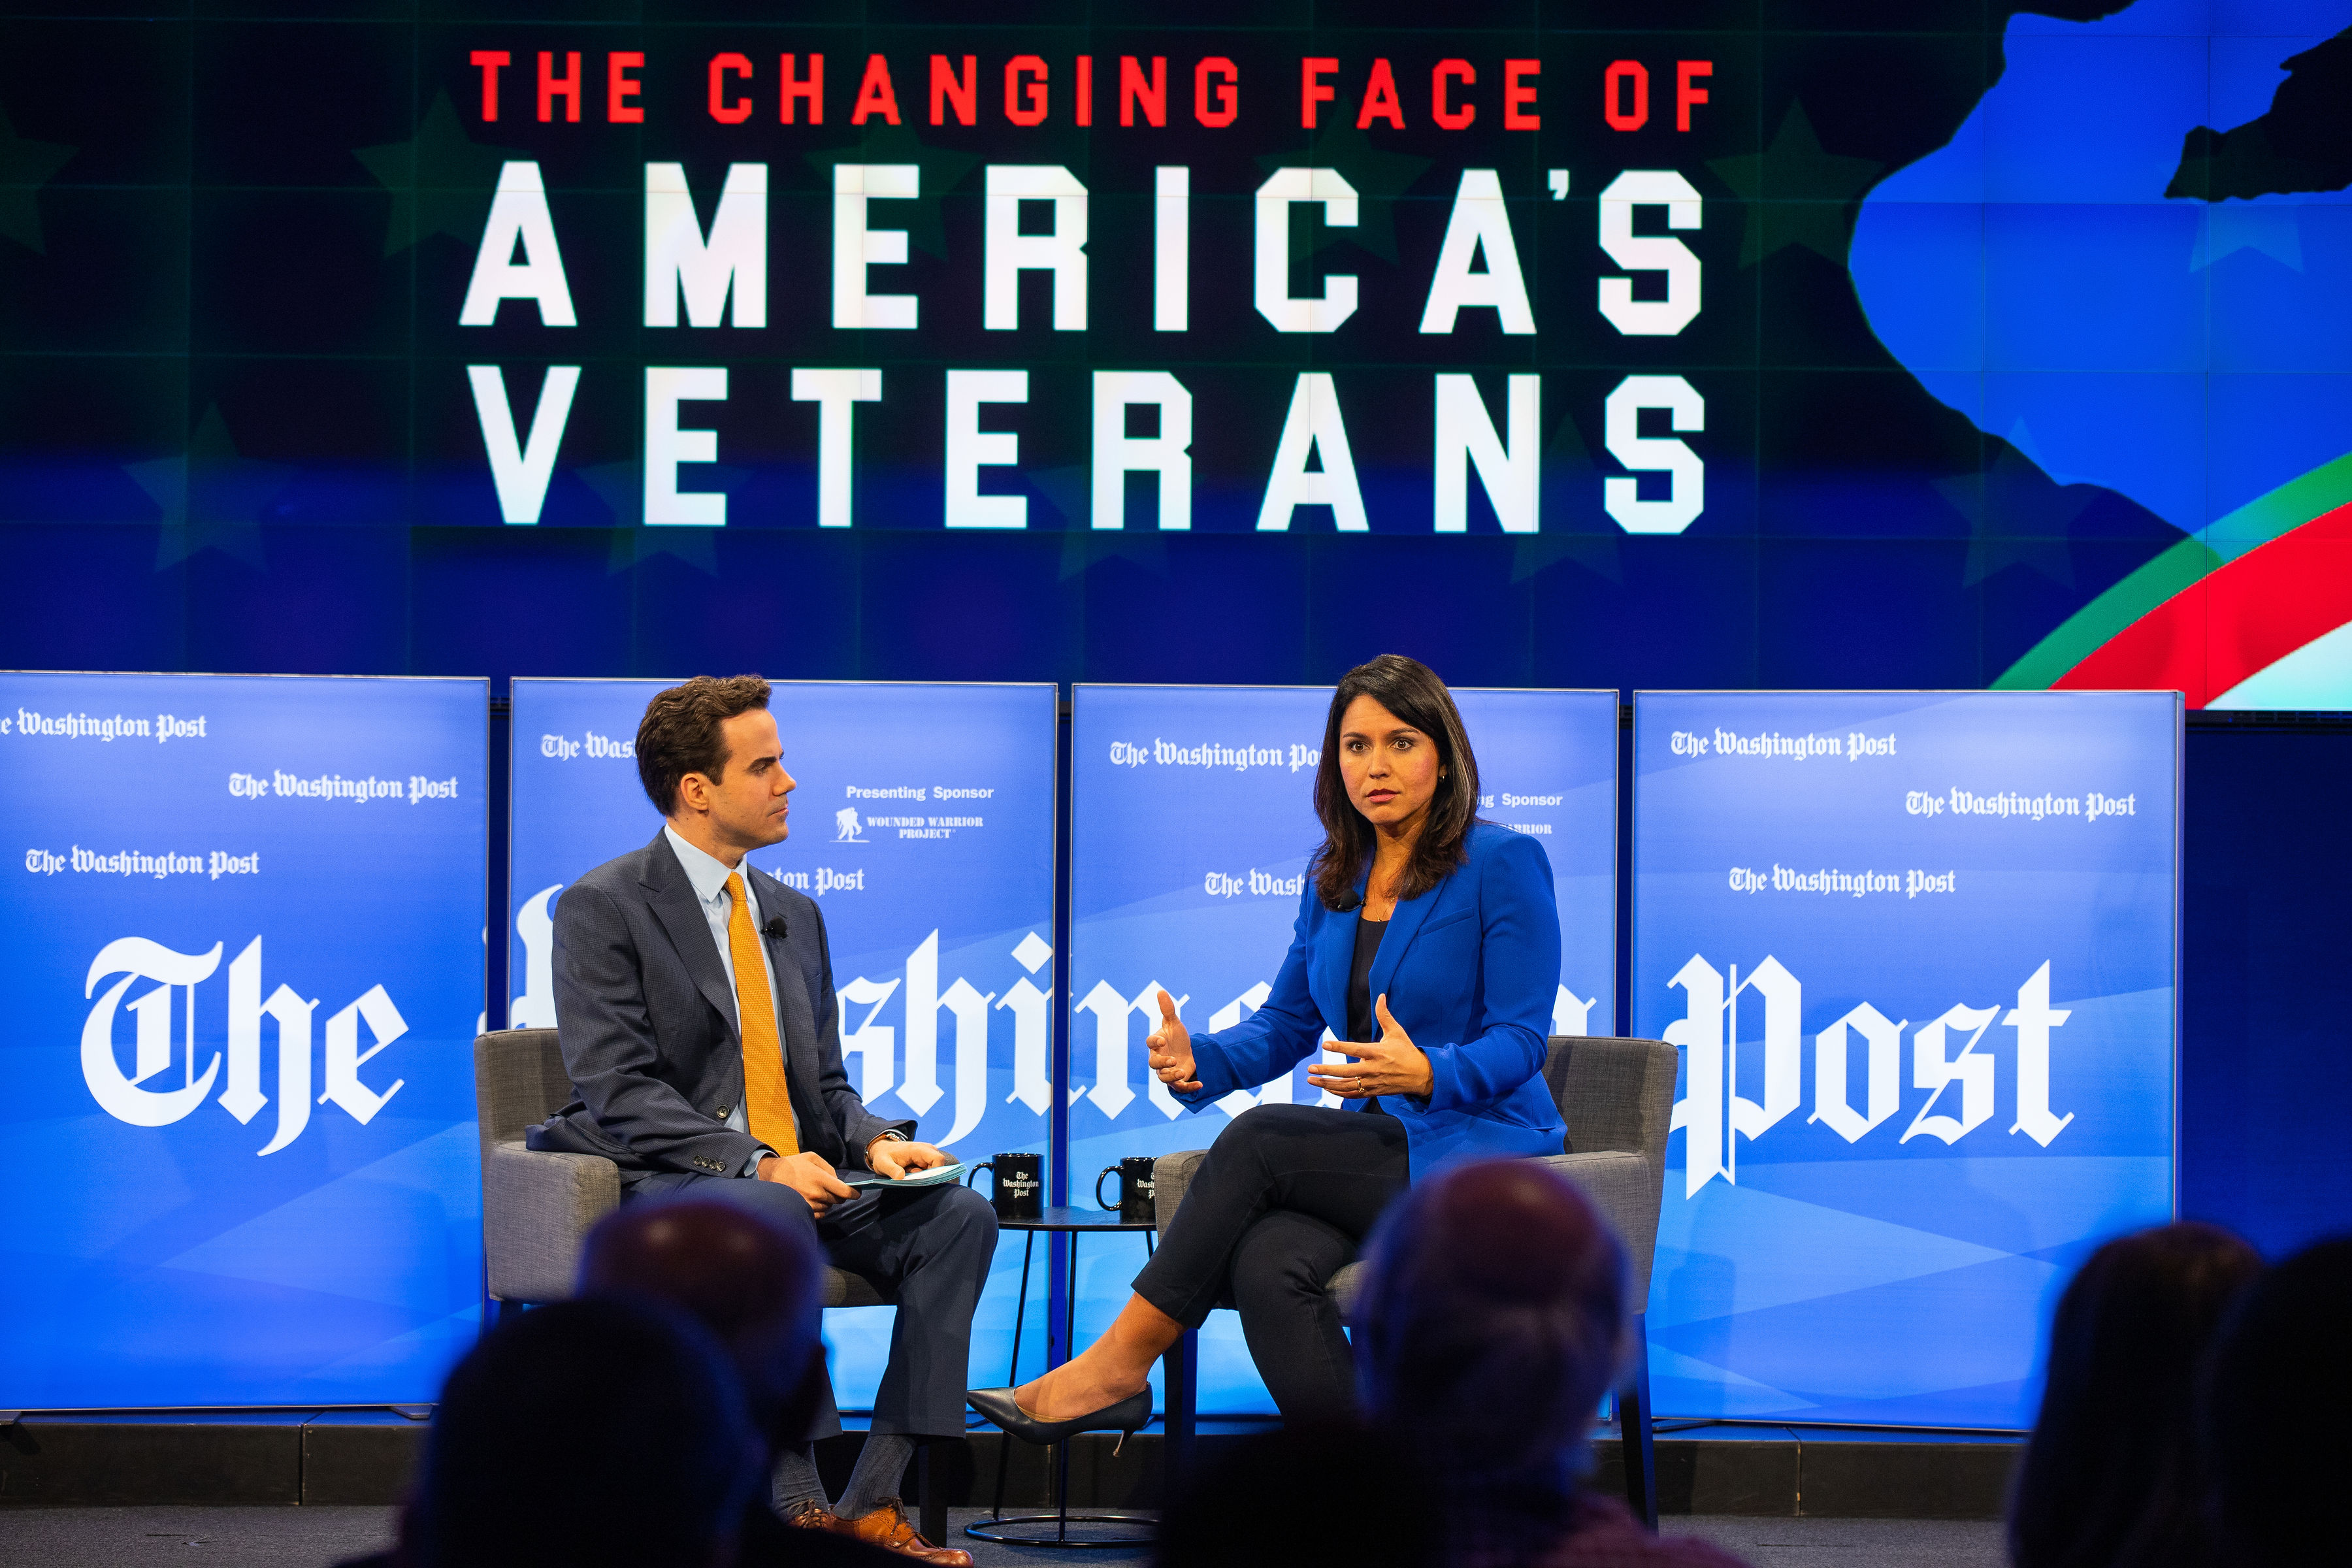 Transcript: The Changing Face of America's Veterans - The